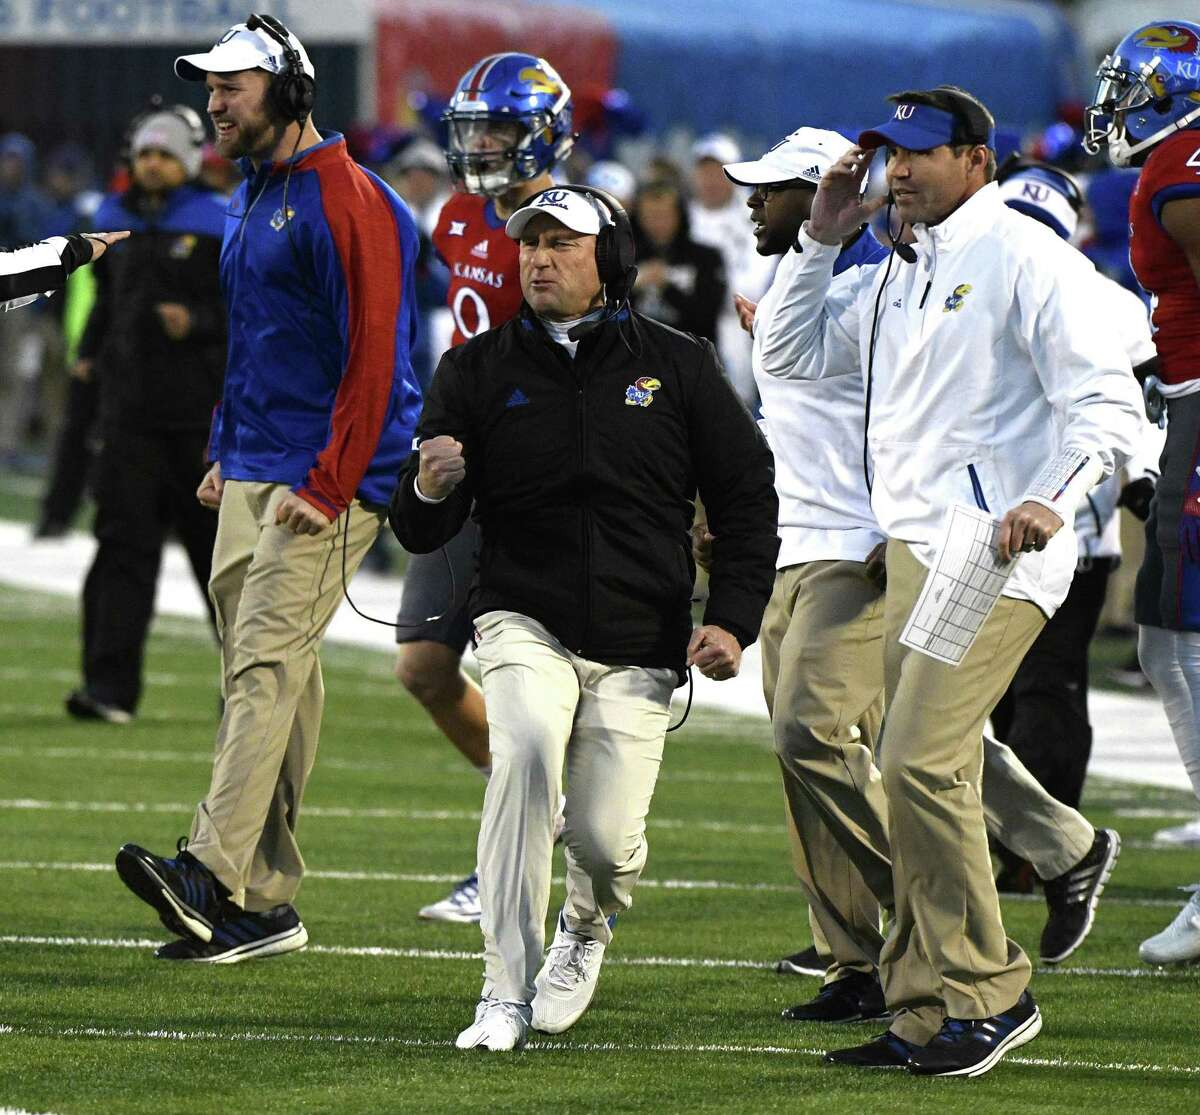 LAWRENCE, KS - NOVEMBER 19: David Beaty (C) head coach of the Kansas Jayhawks celebrates after the Texas Longhorns missed a field goal in the third quarter at Memorial Stadium on November 19, 2016 in Lawrence, Kansas. Kansas won 24-21 in overtime. (Photo by Ed Zurga/Getty Images)